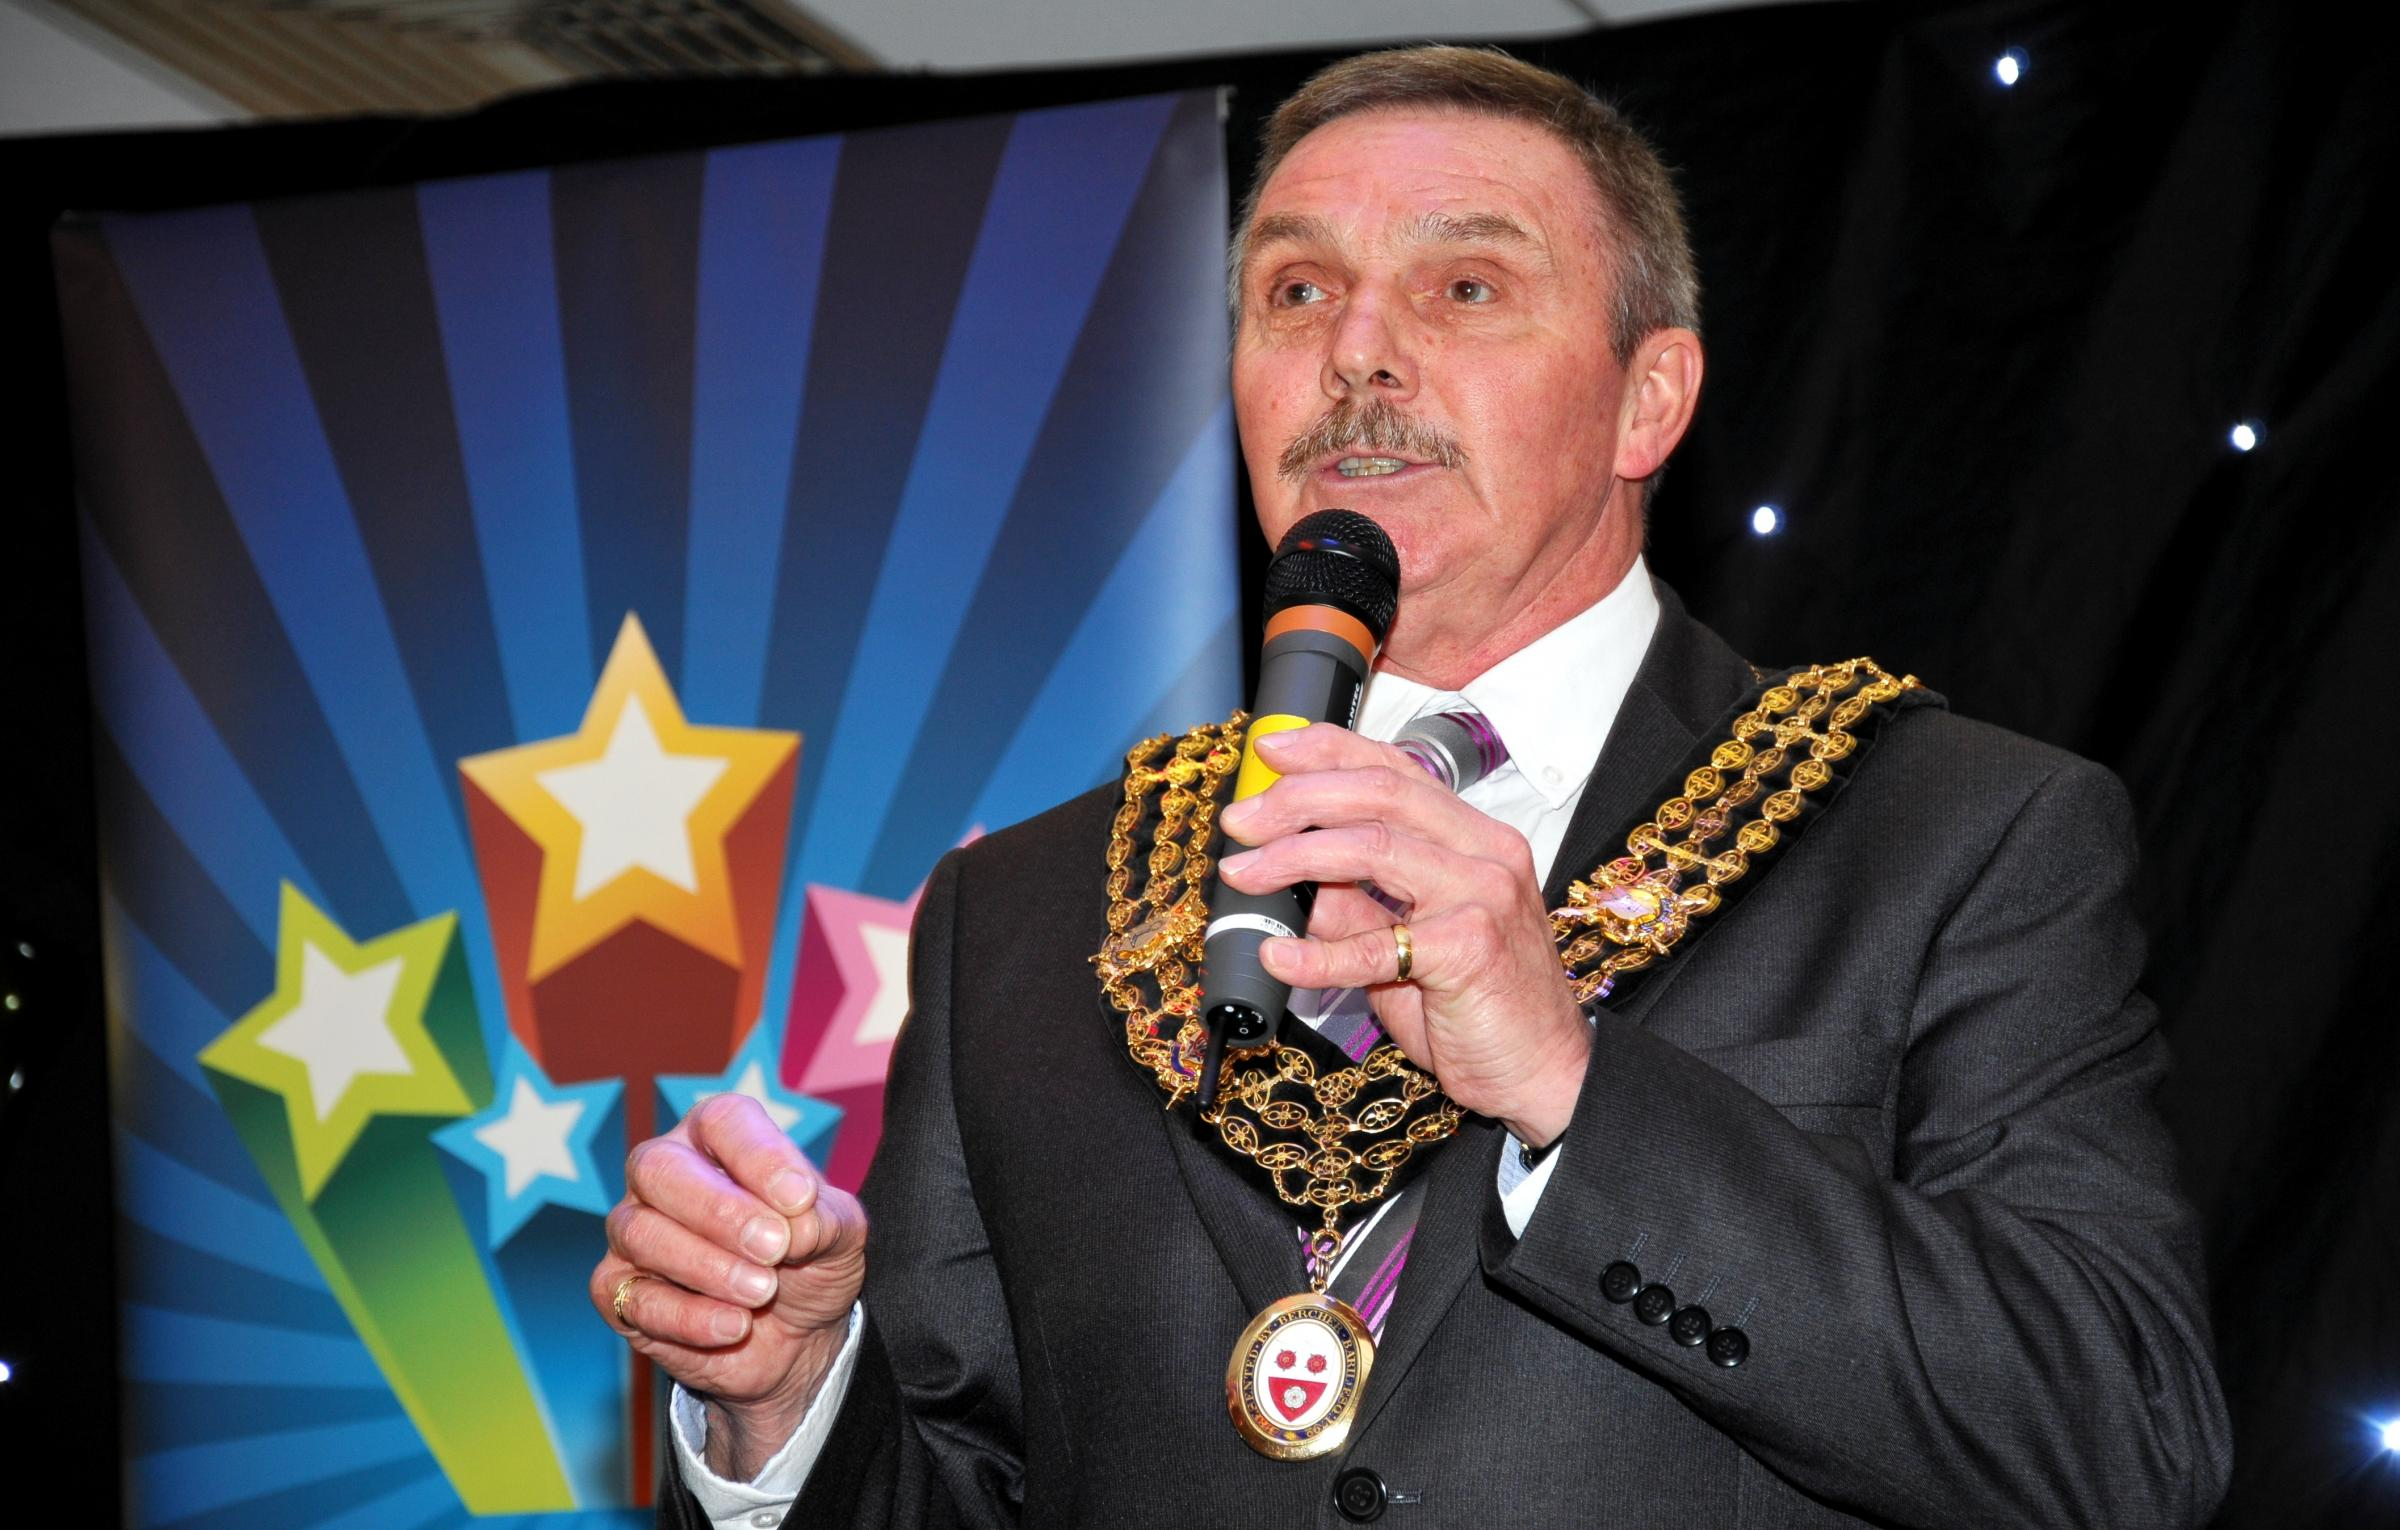 Mayor of Southampton, Cllr Derek Burke, in 2012